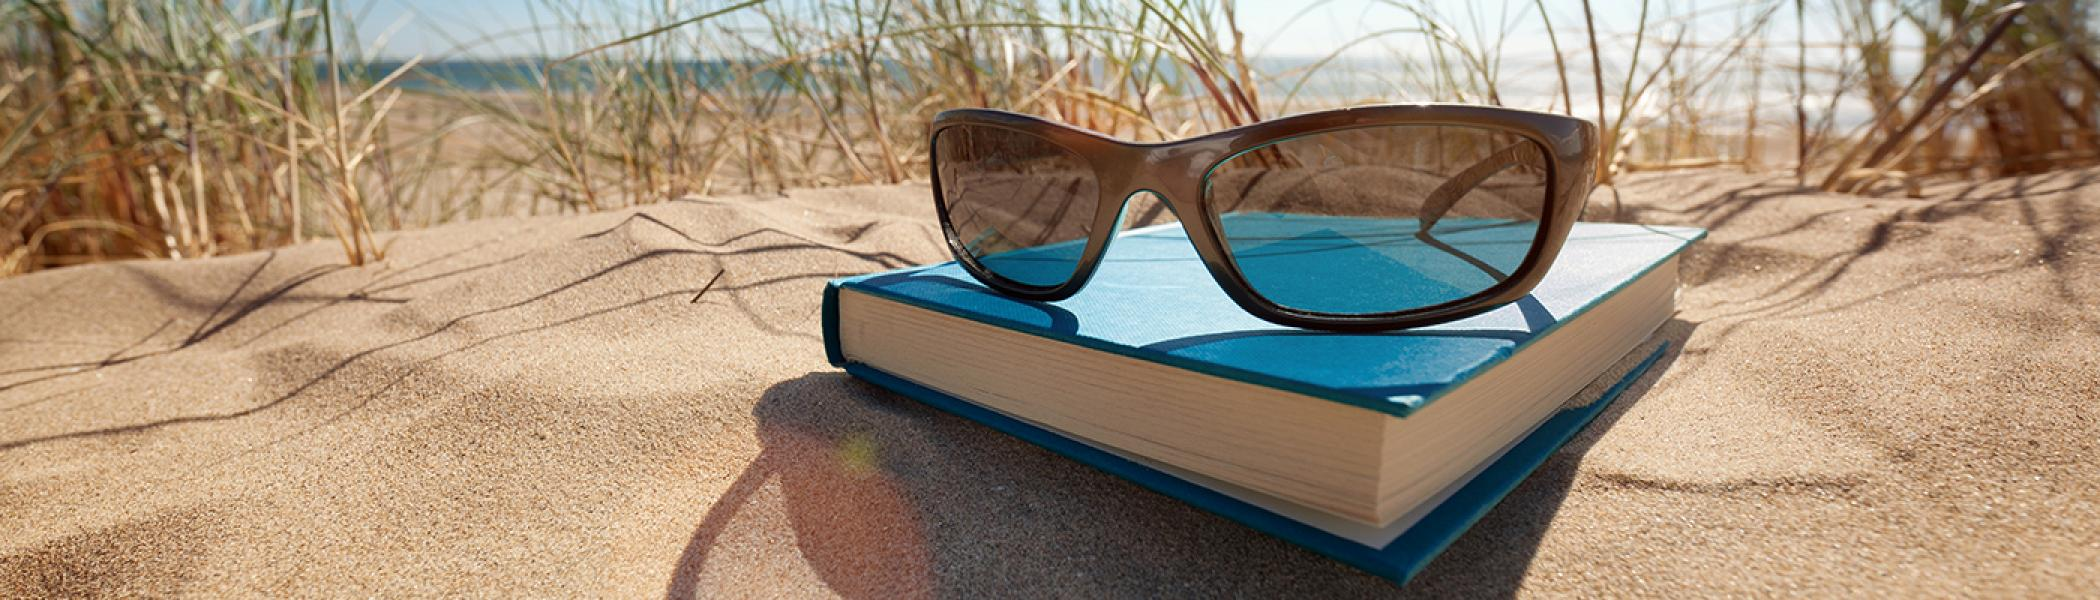 A pair of sunglasses resting on a blue book on a sandy beach in front of the ocean